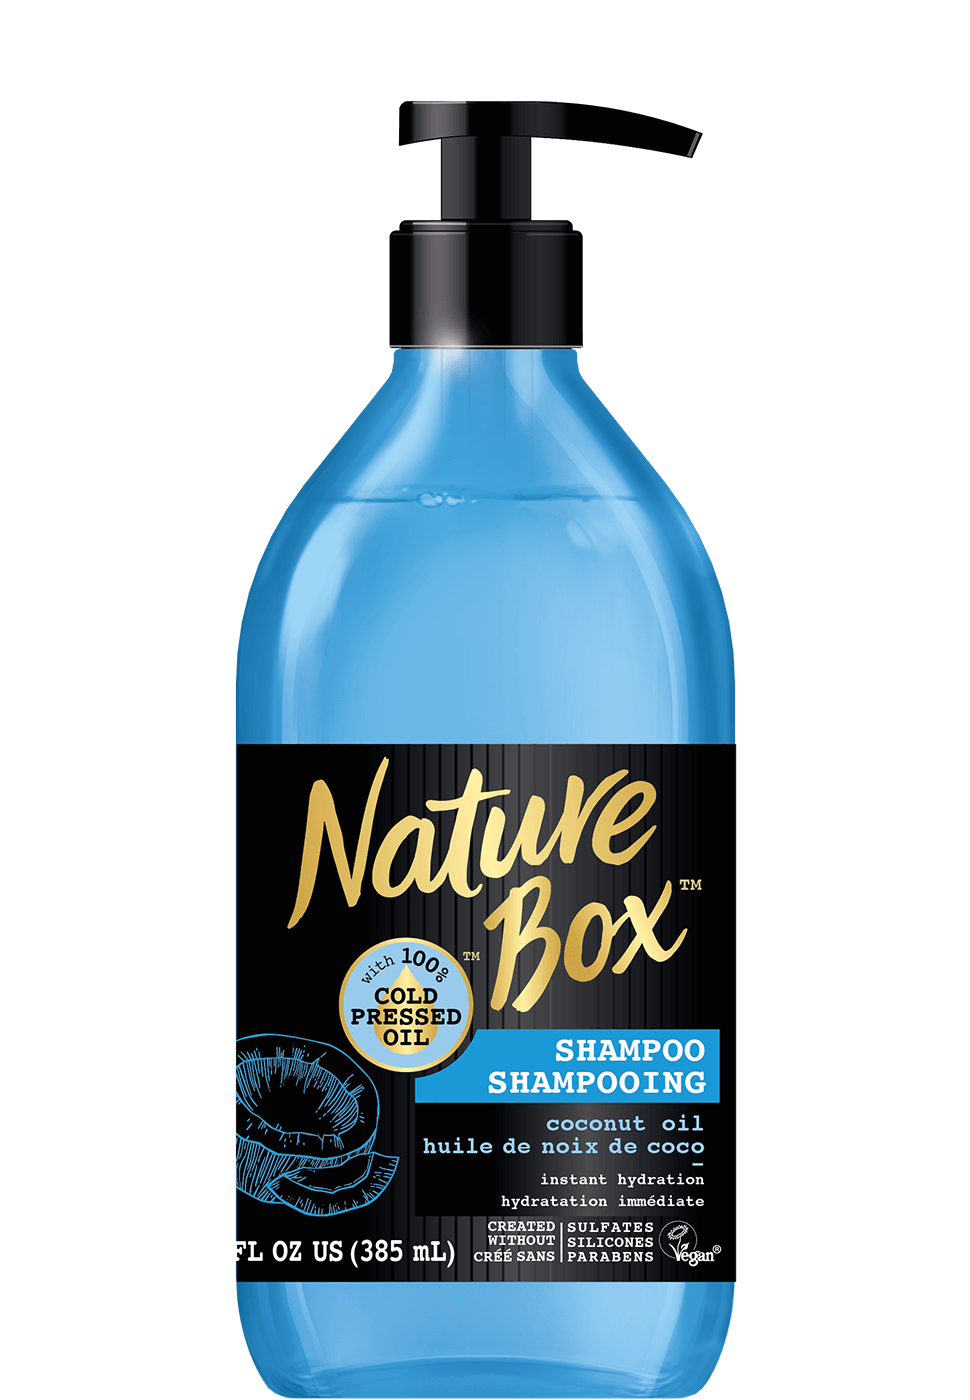 naturebox_ca_fr_coconut_shampoo_970x1400